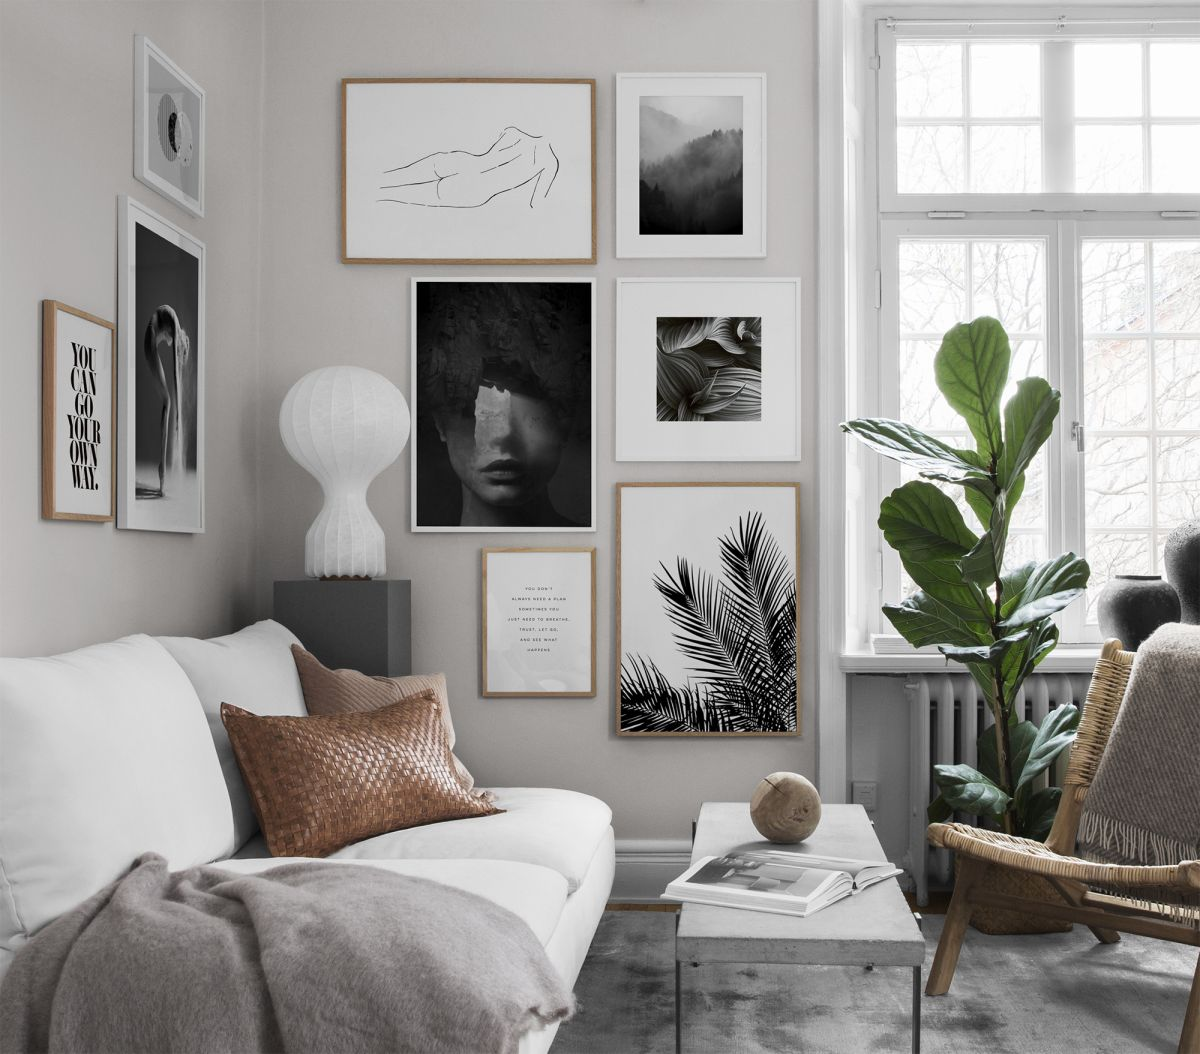 How to make a dark room brighter: 12 ideas to lighten your spaces